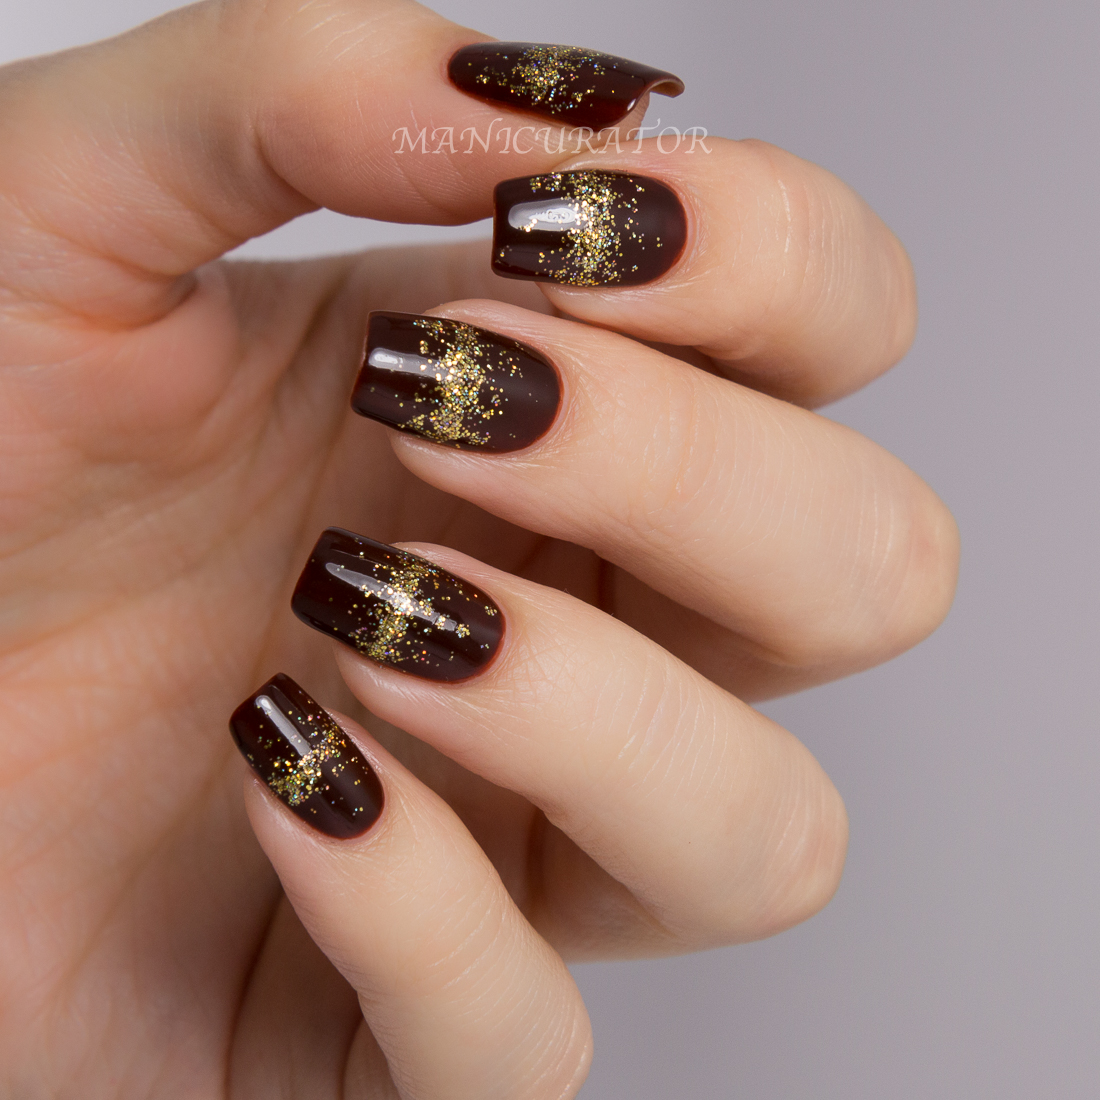 Nail art brown image collections nail art and nail design ideas gloss48 floss gloss feature nail art giveaway manicurator gloss48 floss gloss feature nail art giveaway prinsesfo prinsesfo Image collections